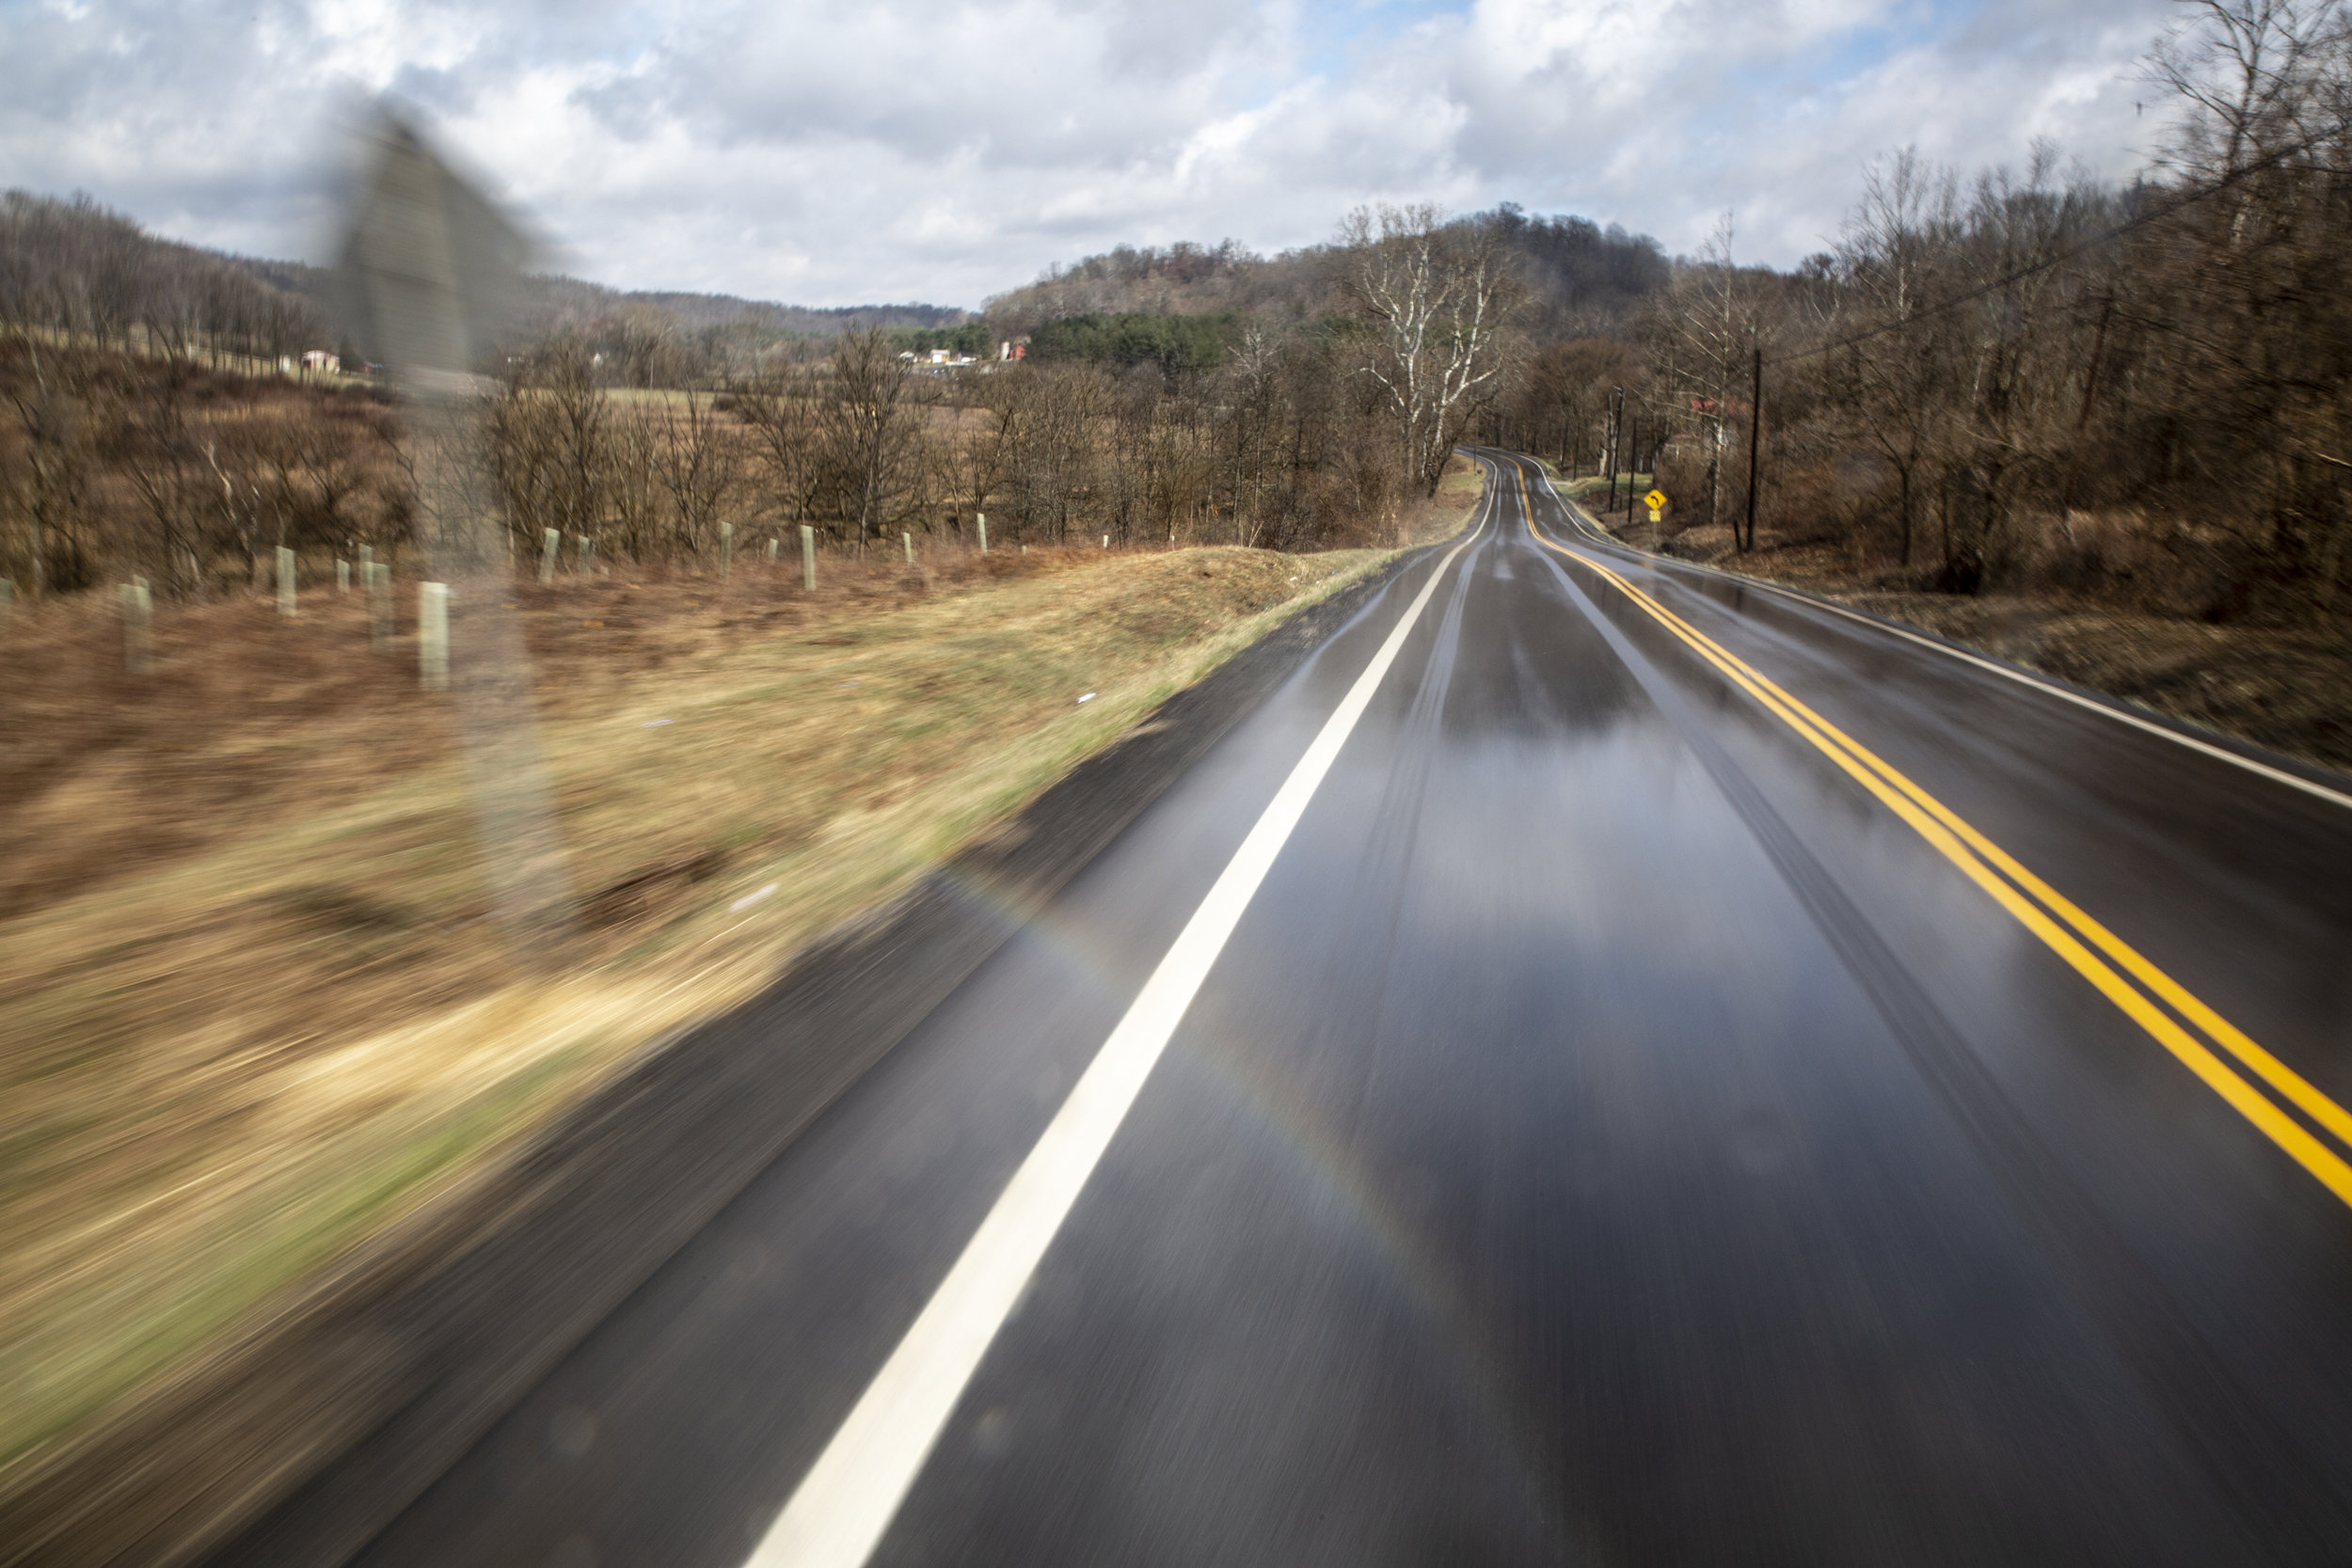 Though the community is cut off from many resources, Ohio State Route 550 runs directly through Sharpsburg, connecting it to Chesterhill, Amesville and the county's largest city: Athens.